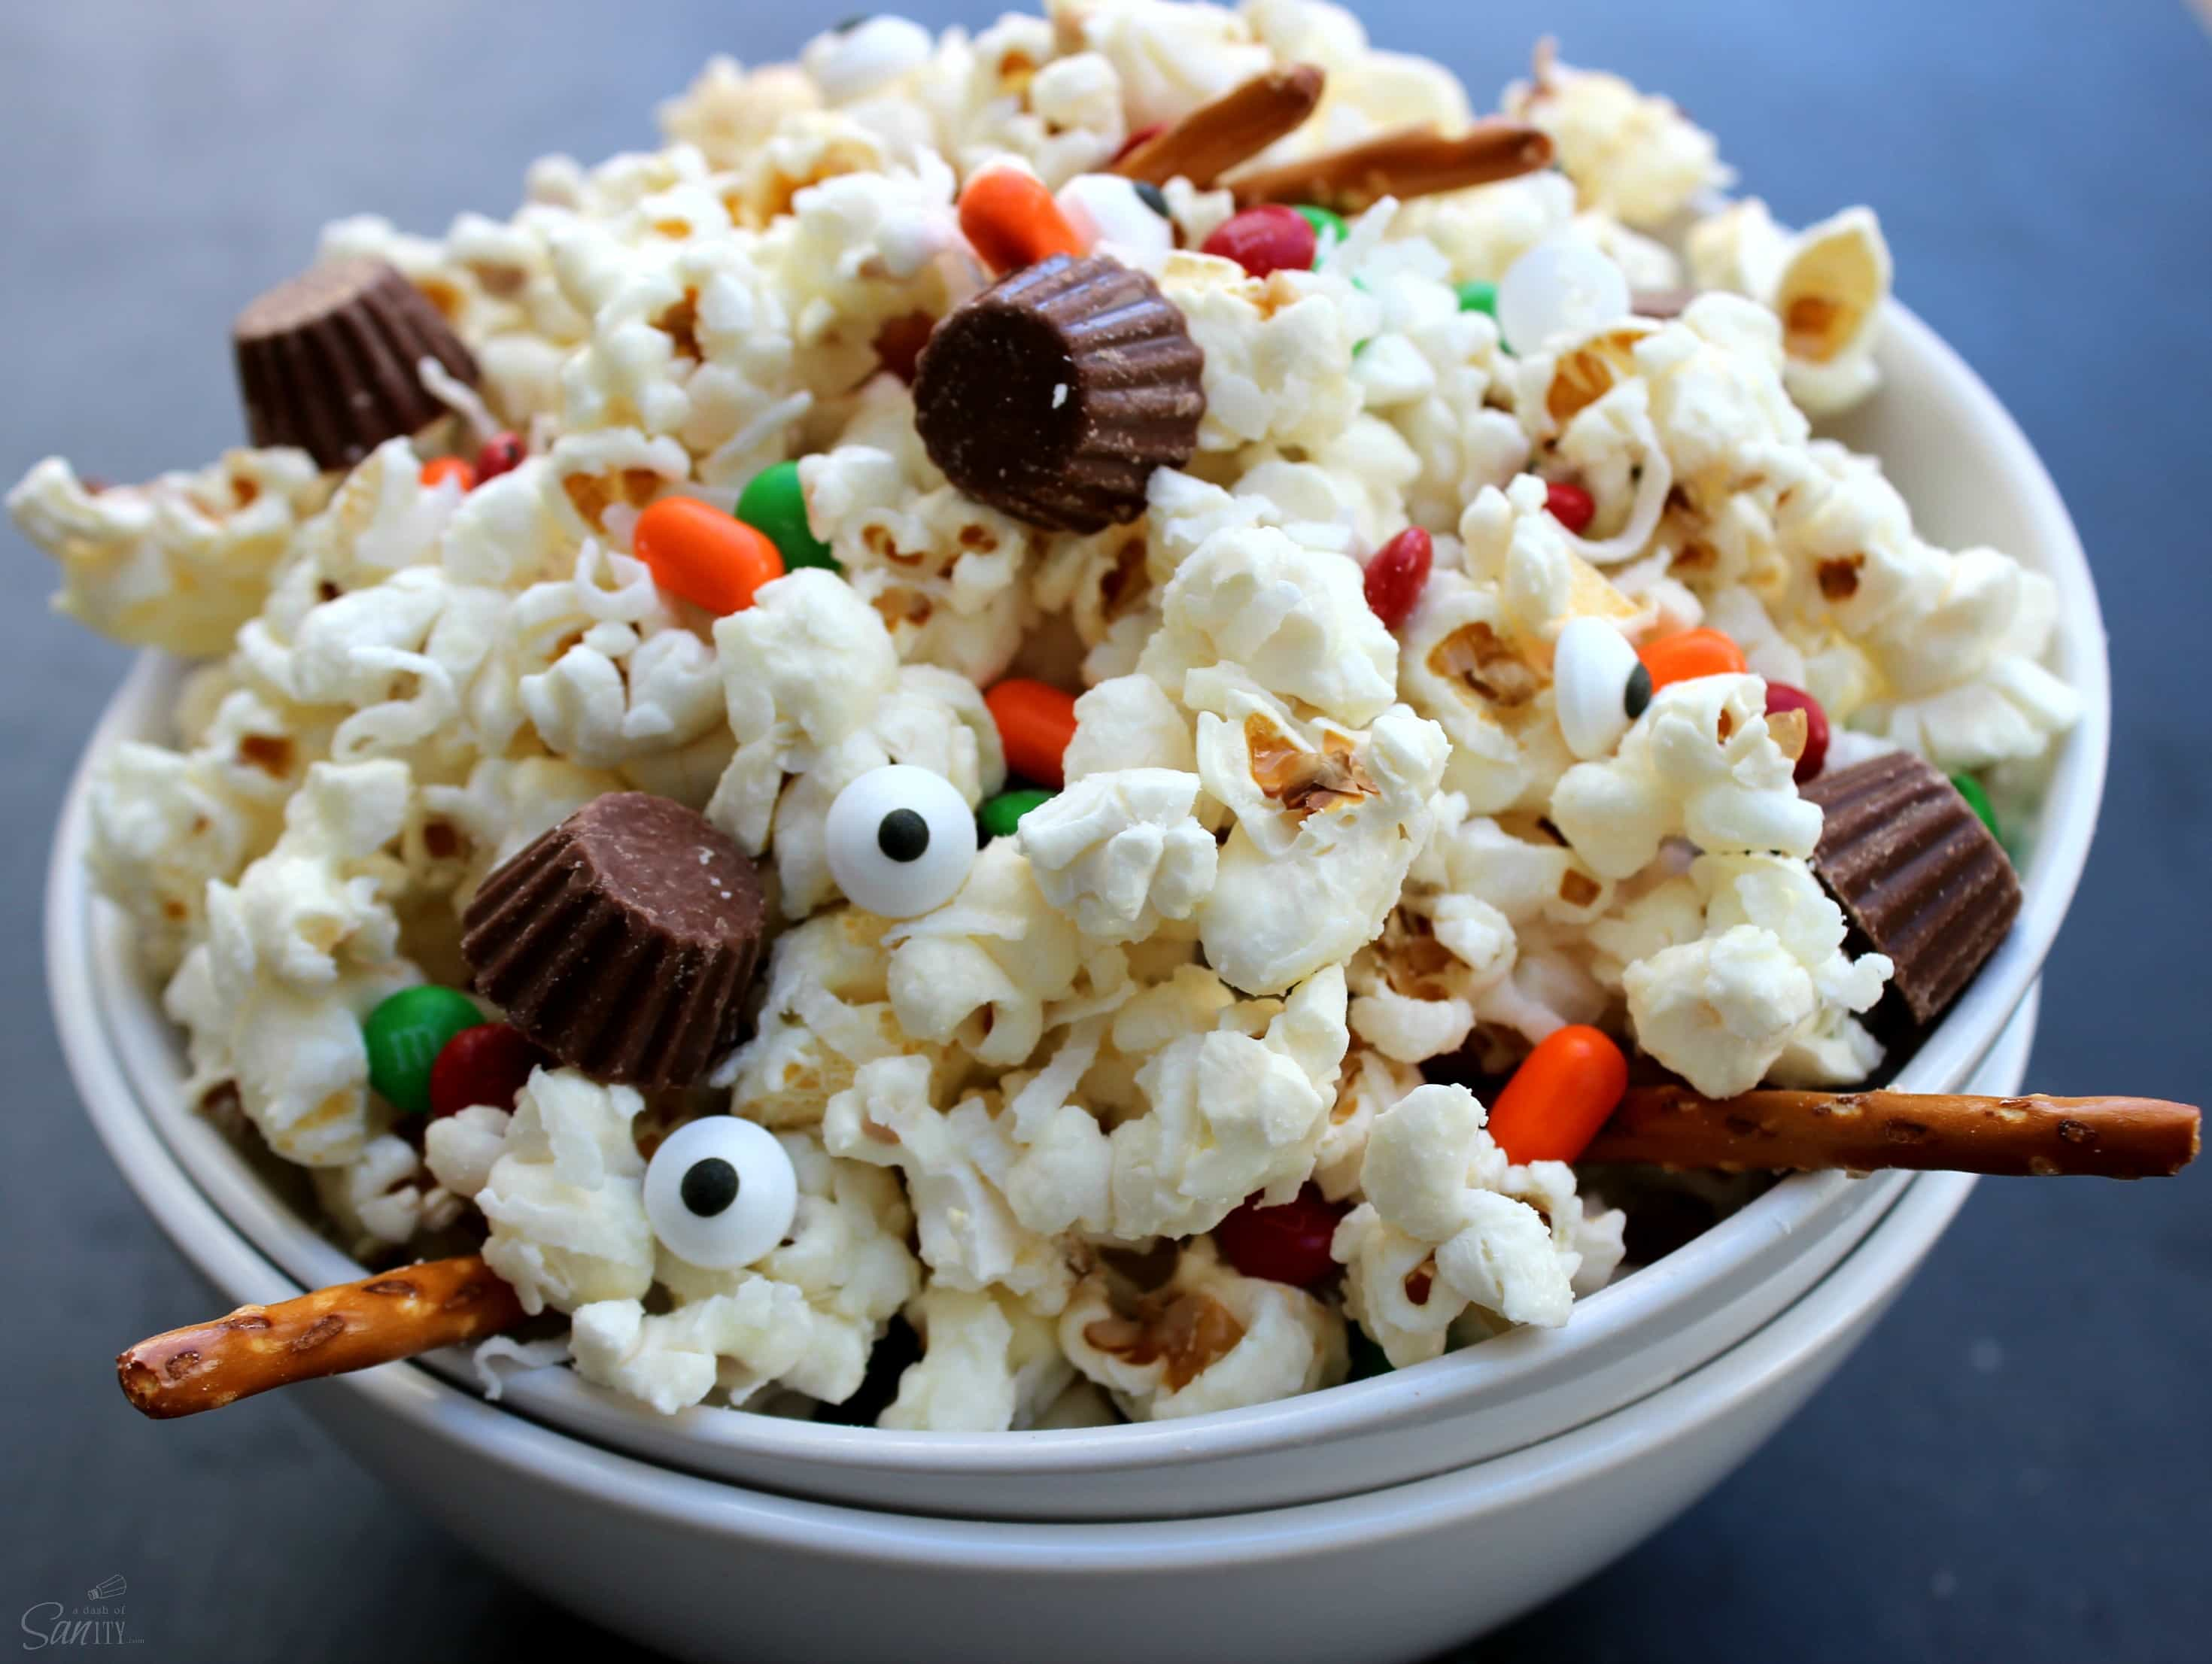 This Deconstructed Snowman Popcorn is such a fun and festive snack to make for your kids as an after school or holiday party treat.